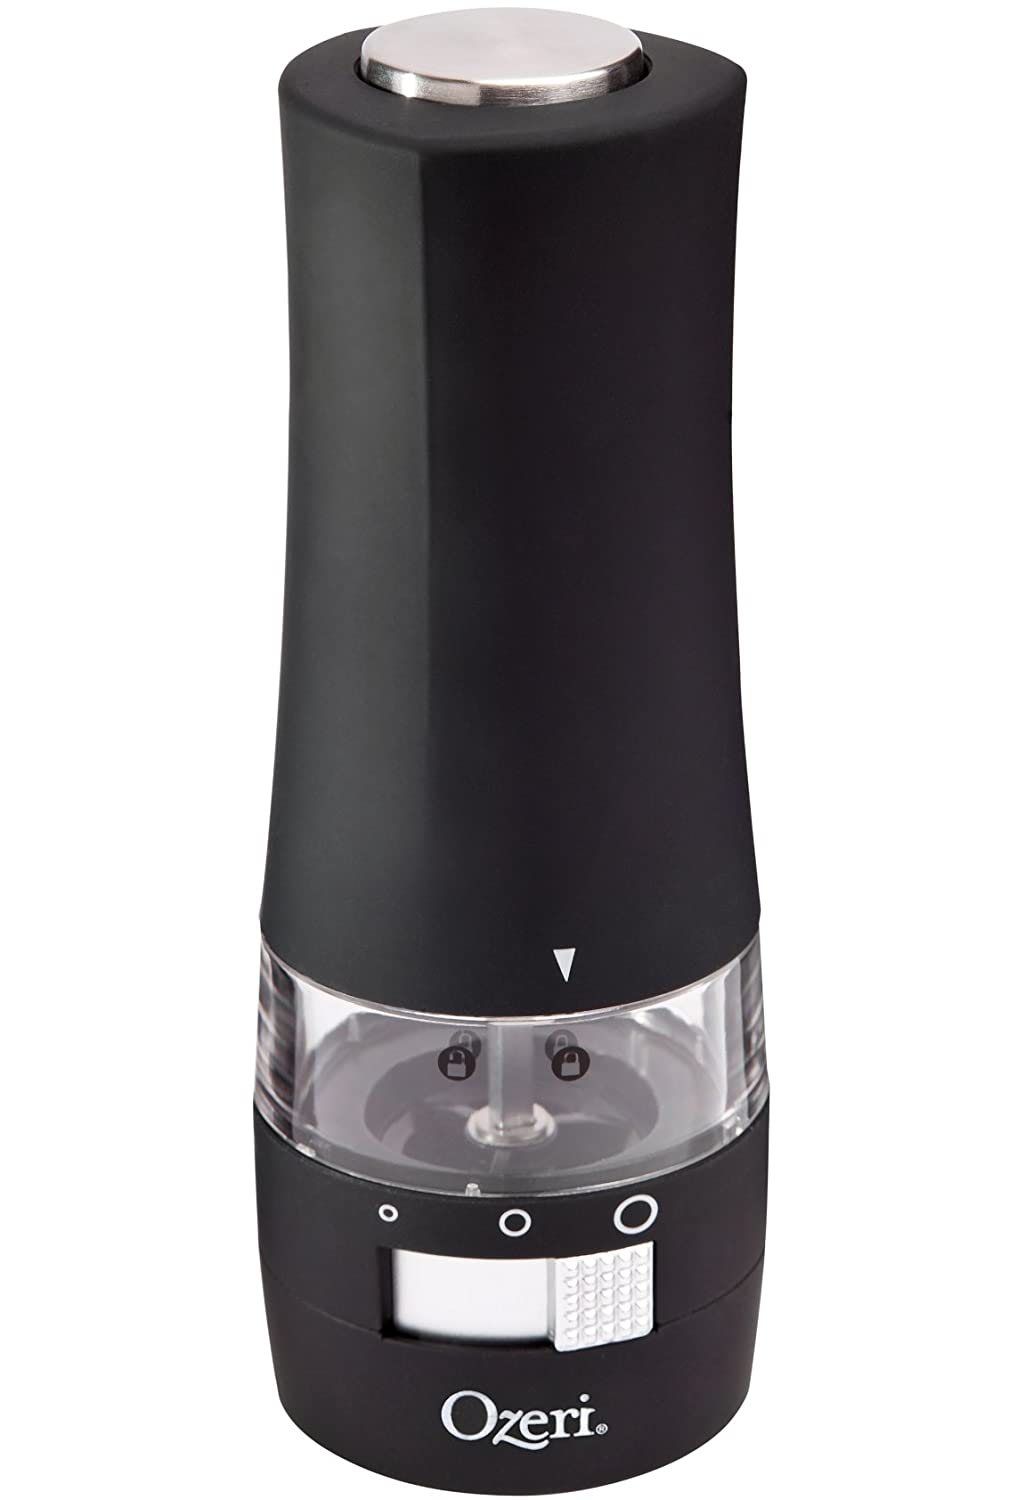 Ozeri Savore Soft Touch Electric Pepper Mill and Grinder $12.5